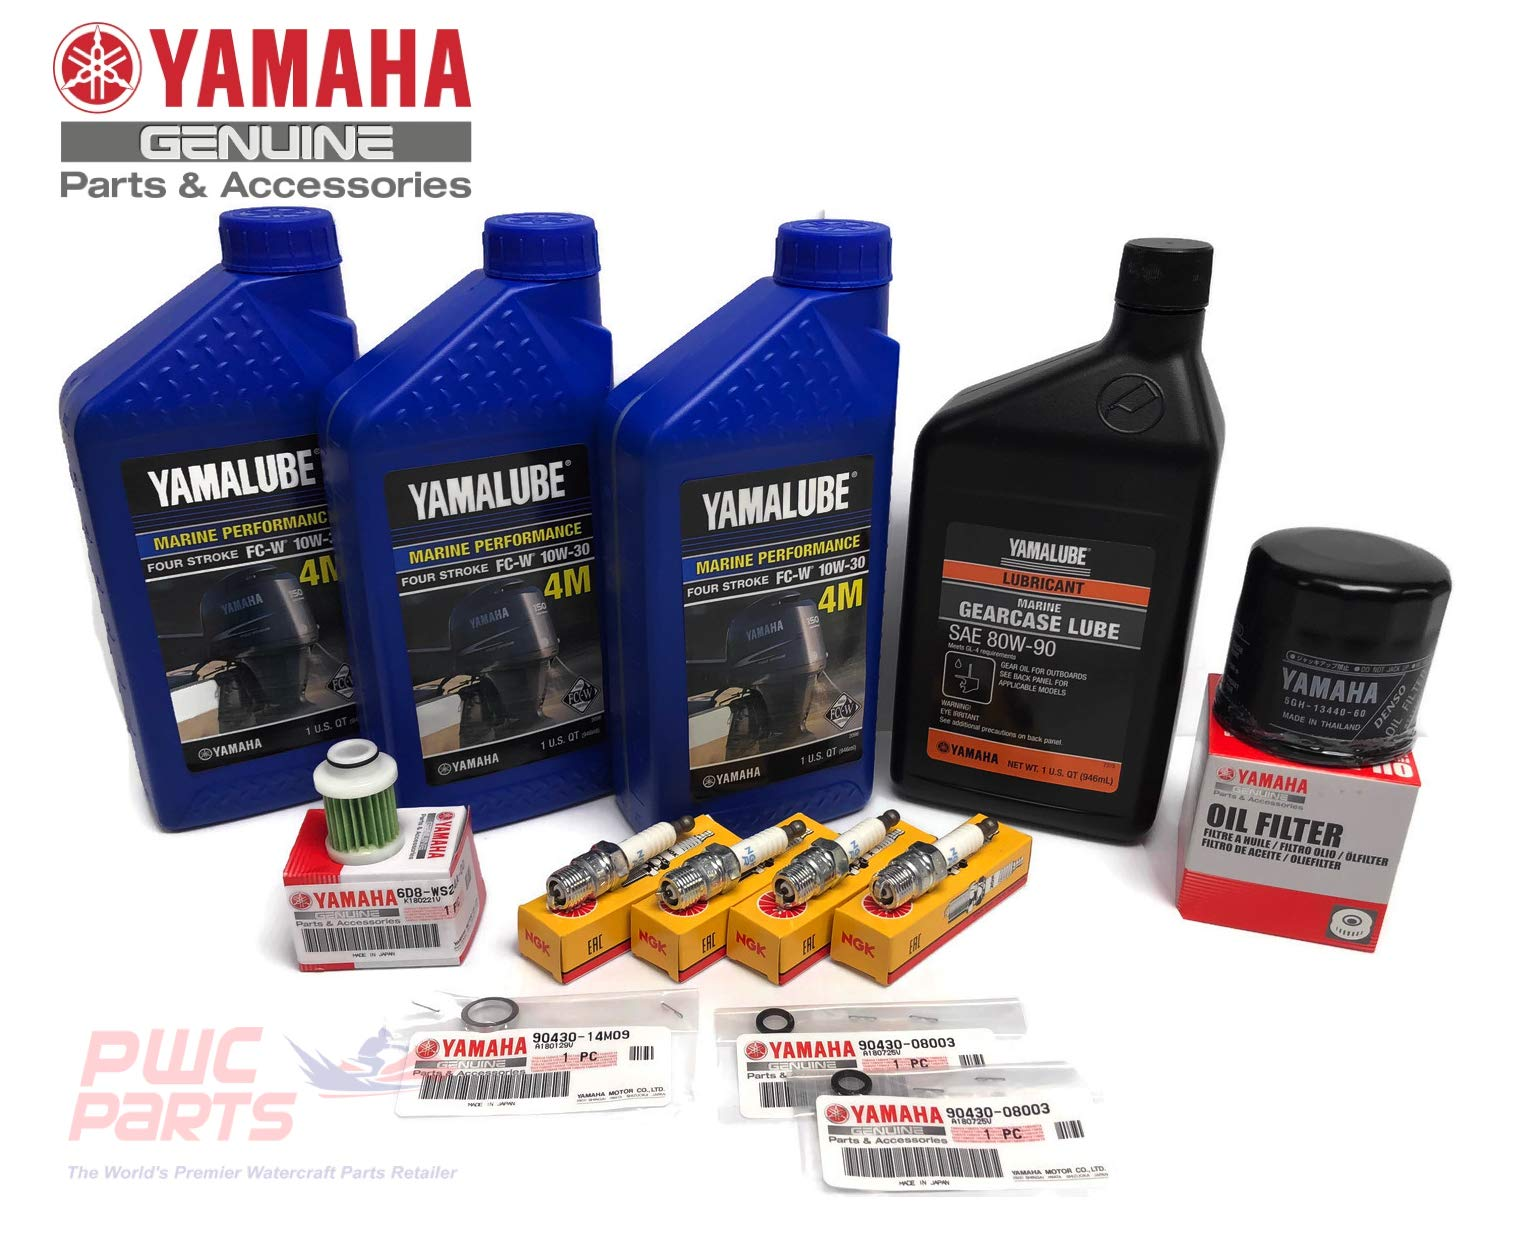 YAMAHA OEM 2006+ F50 T50 F60 T60 Outboard Oil Change 10W30 FC 4M Lower Unit Gear Lube Drain Fill Gaskets Fuel Filter Spark Plugs NGK DPR6EB-9 Maintenance Kit by PWC Parts Co